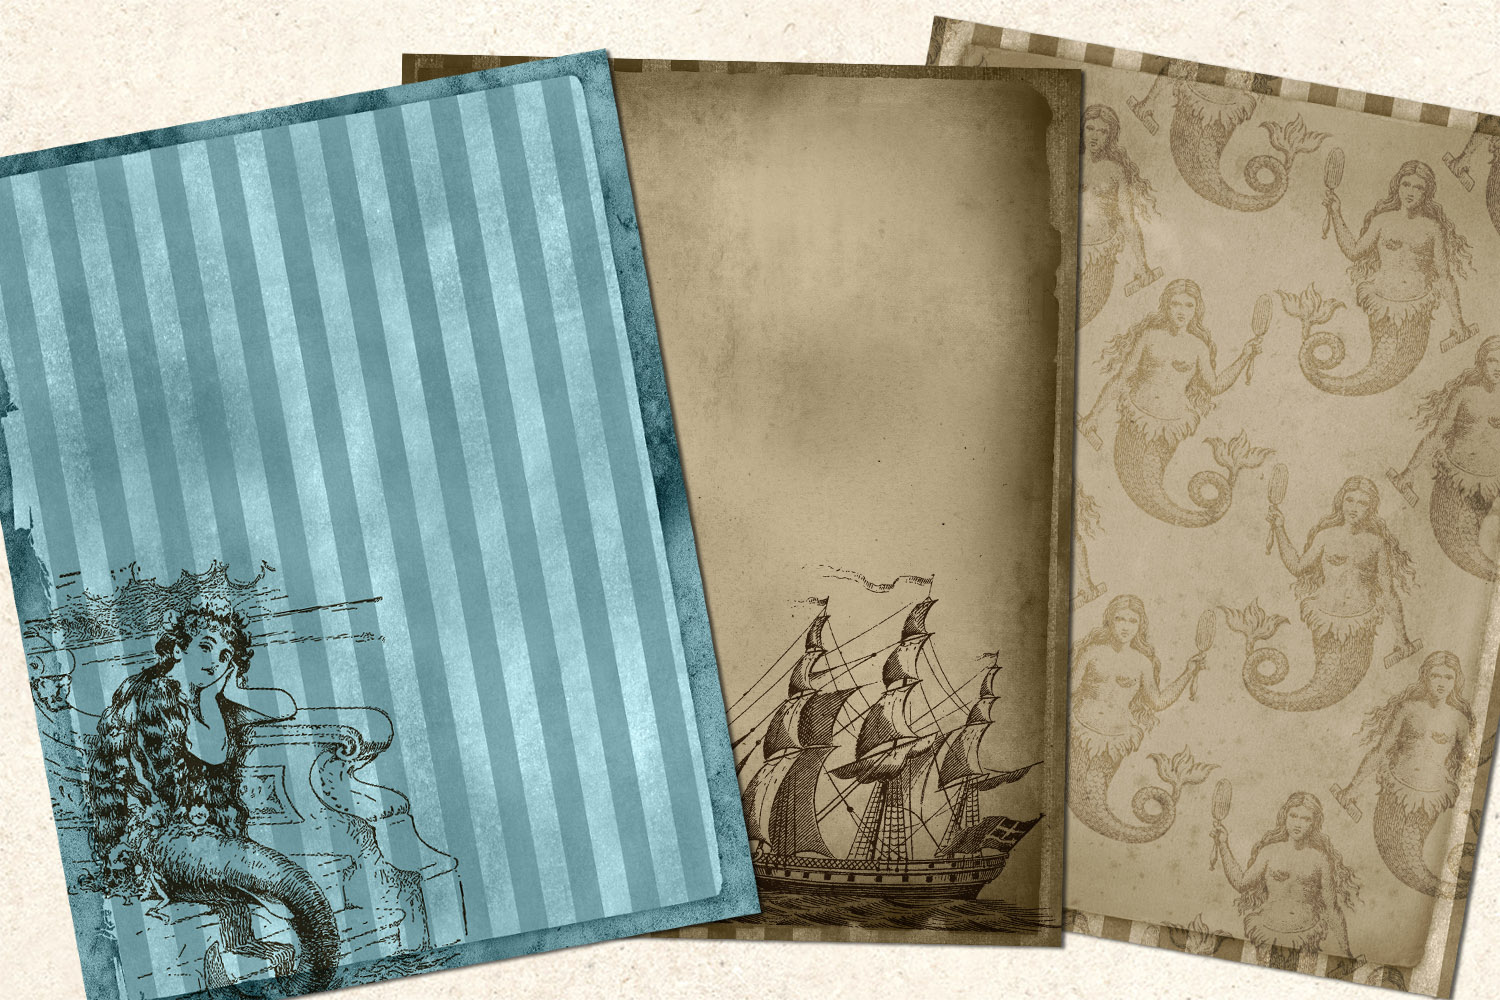 Sea Shanty Printable Journal Paper example image 4